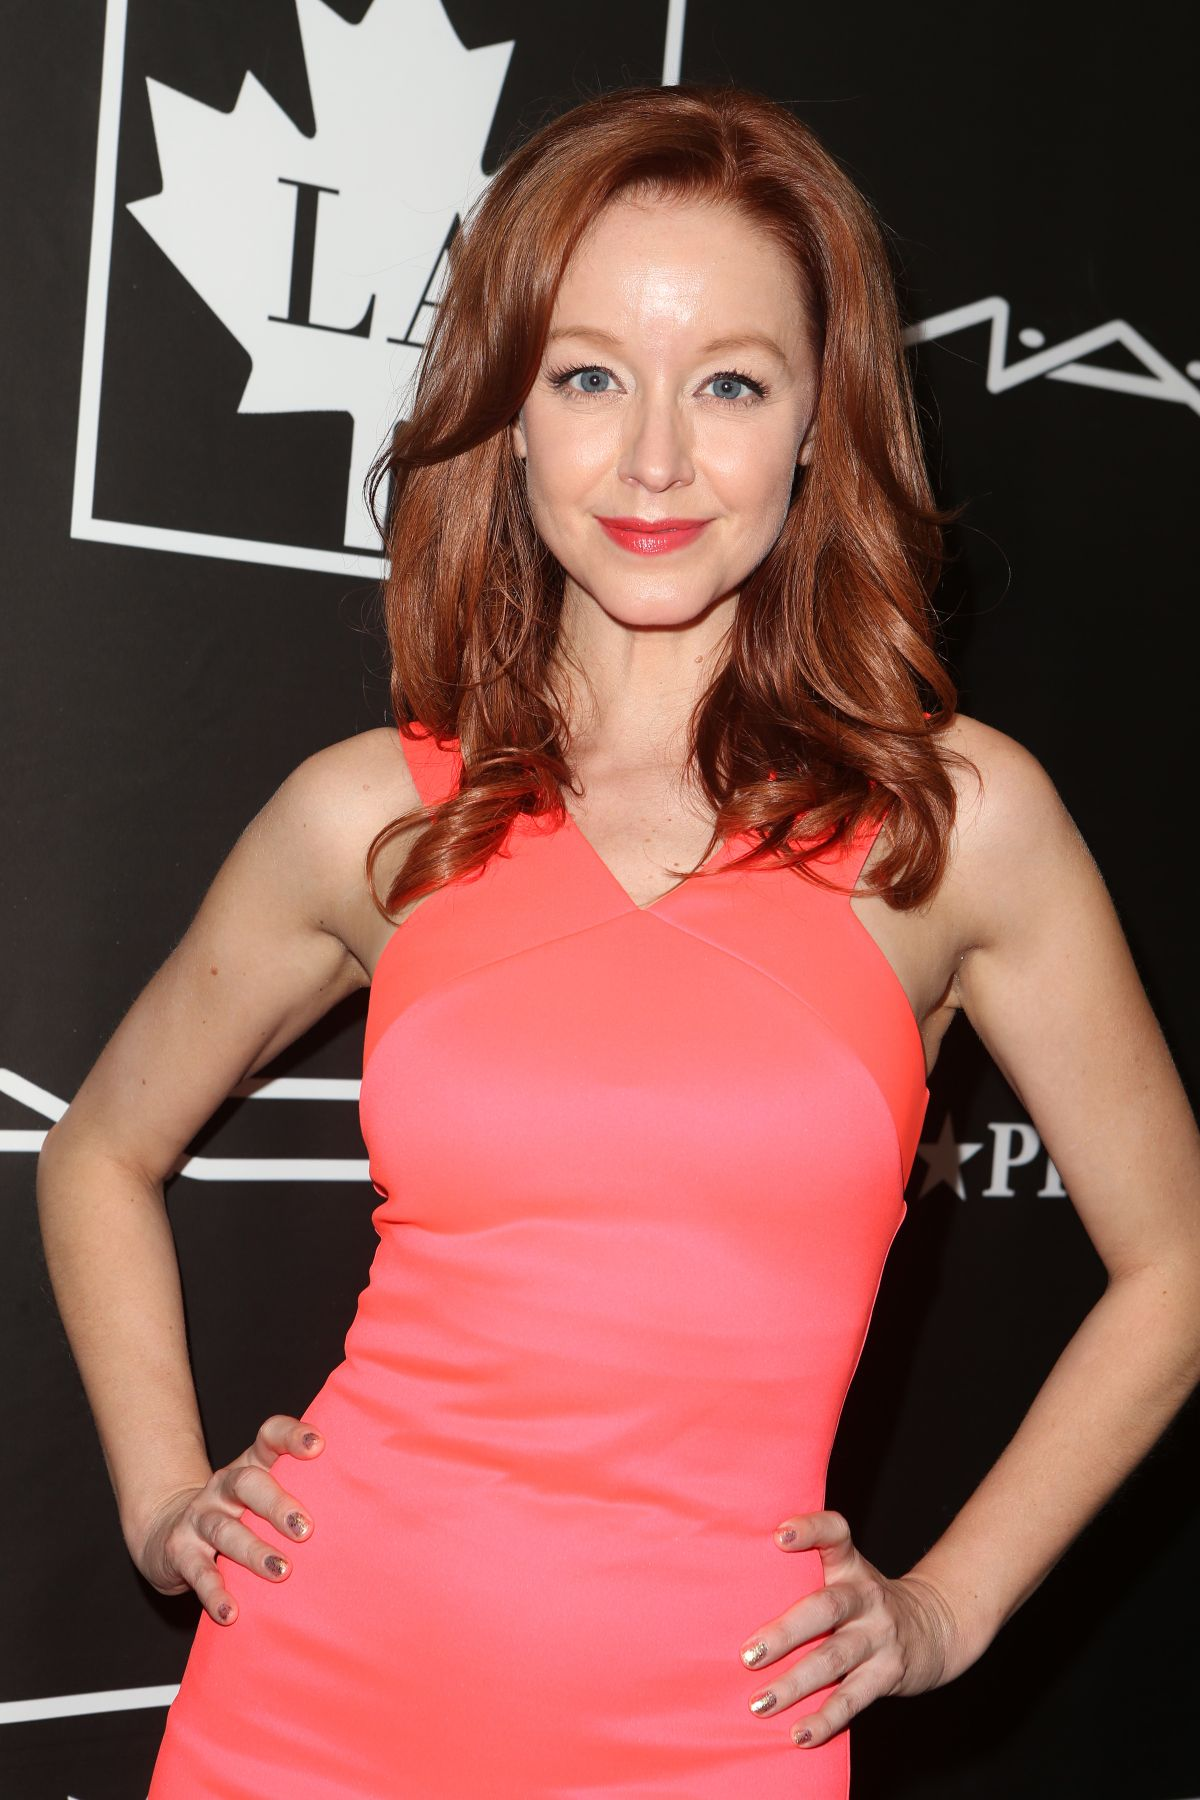 LINDY BOOTH at Golden Maple Awards 2016 in Los Angeles 0/01/2016